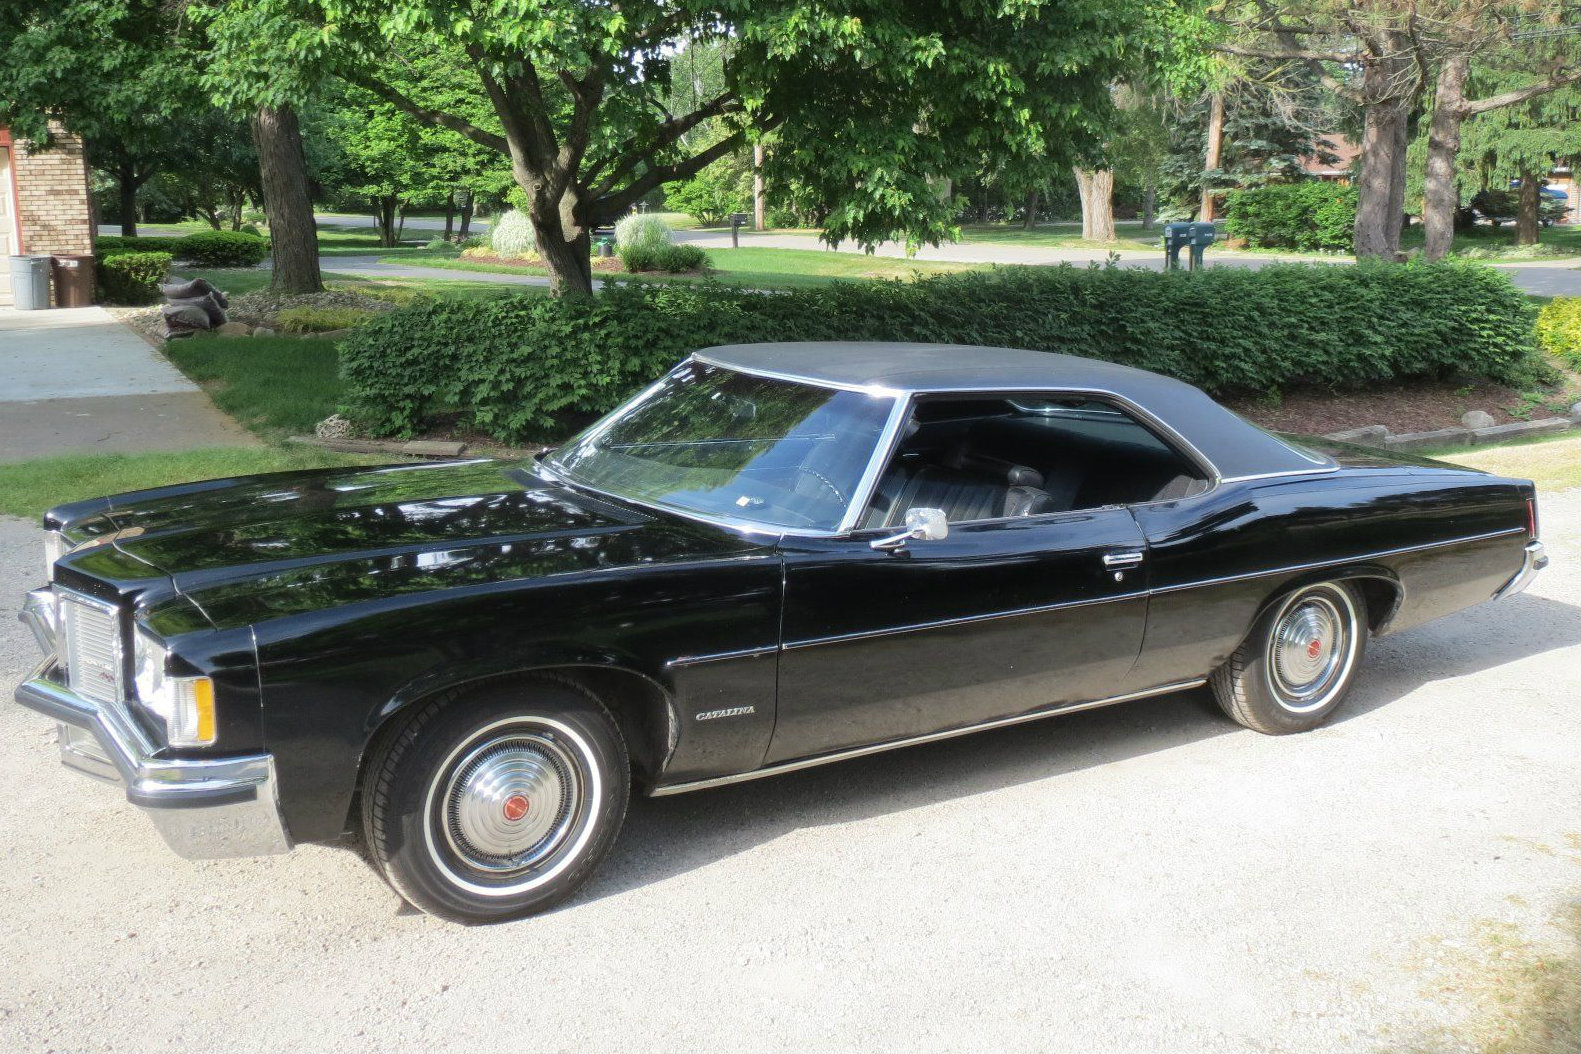 One Family Survivor 1972 Pontiac Catalina